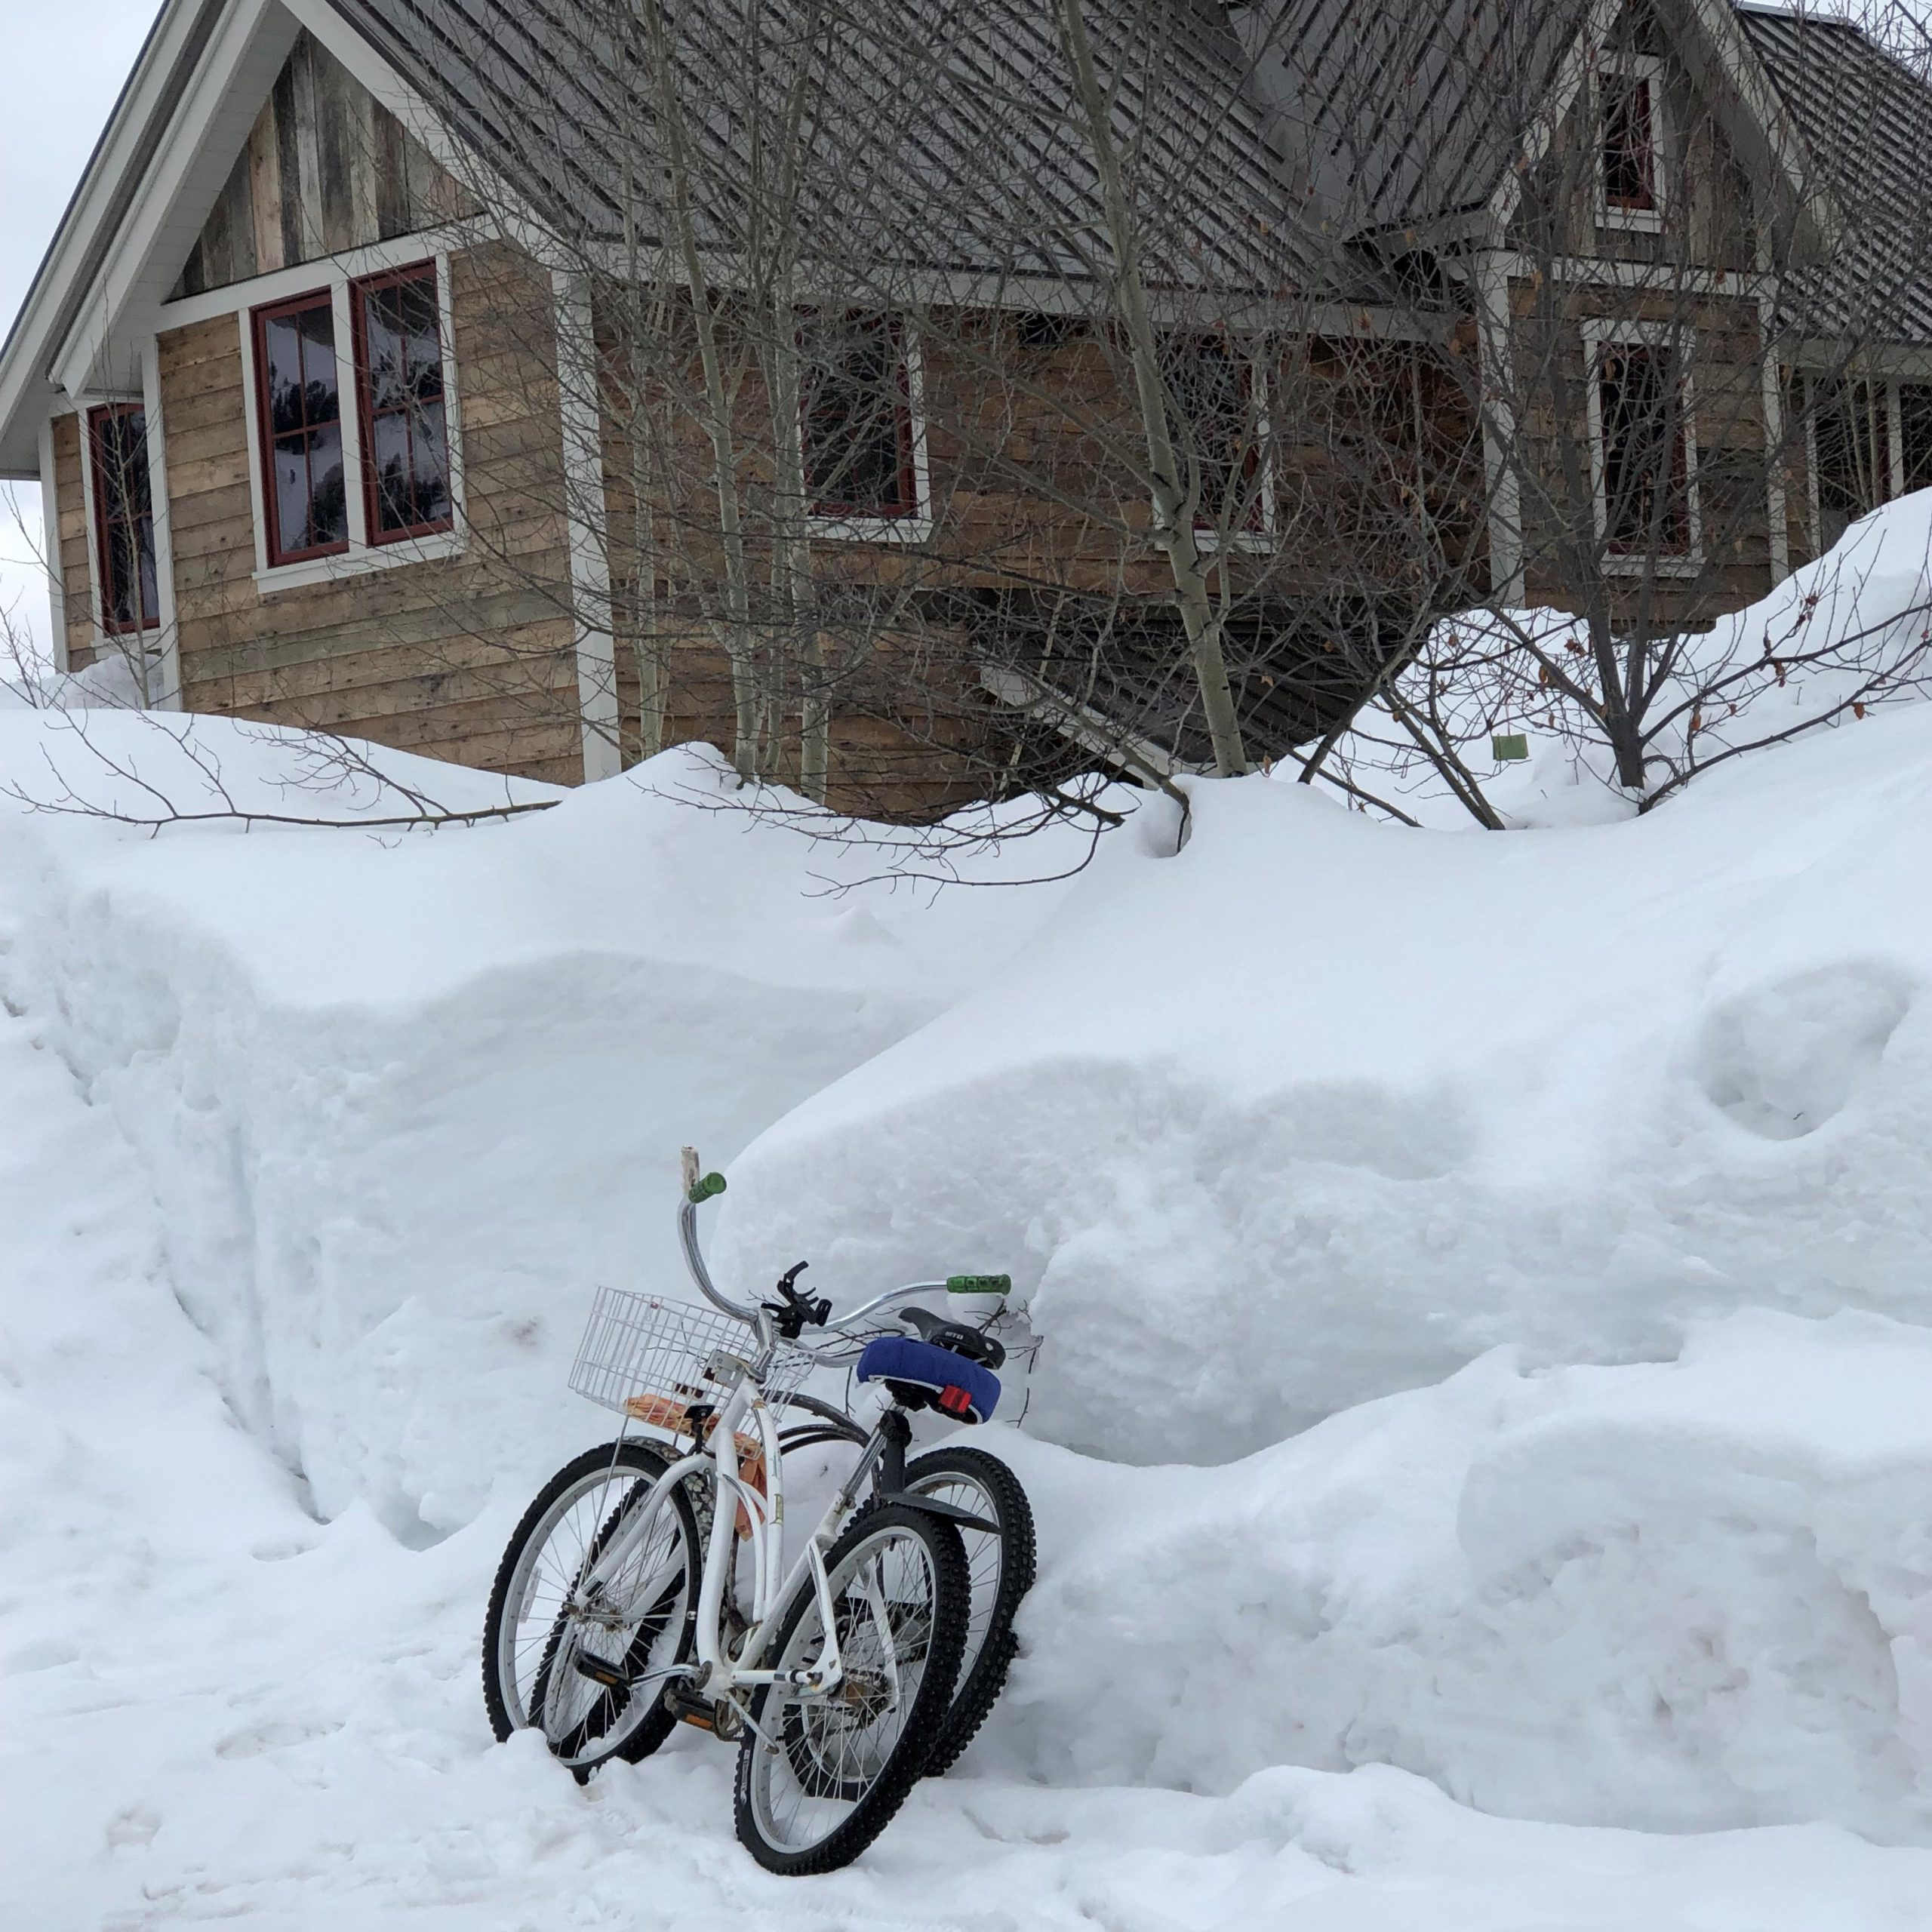 More than 280 inches of snow in Crested Butte this winter